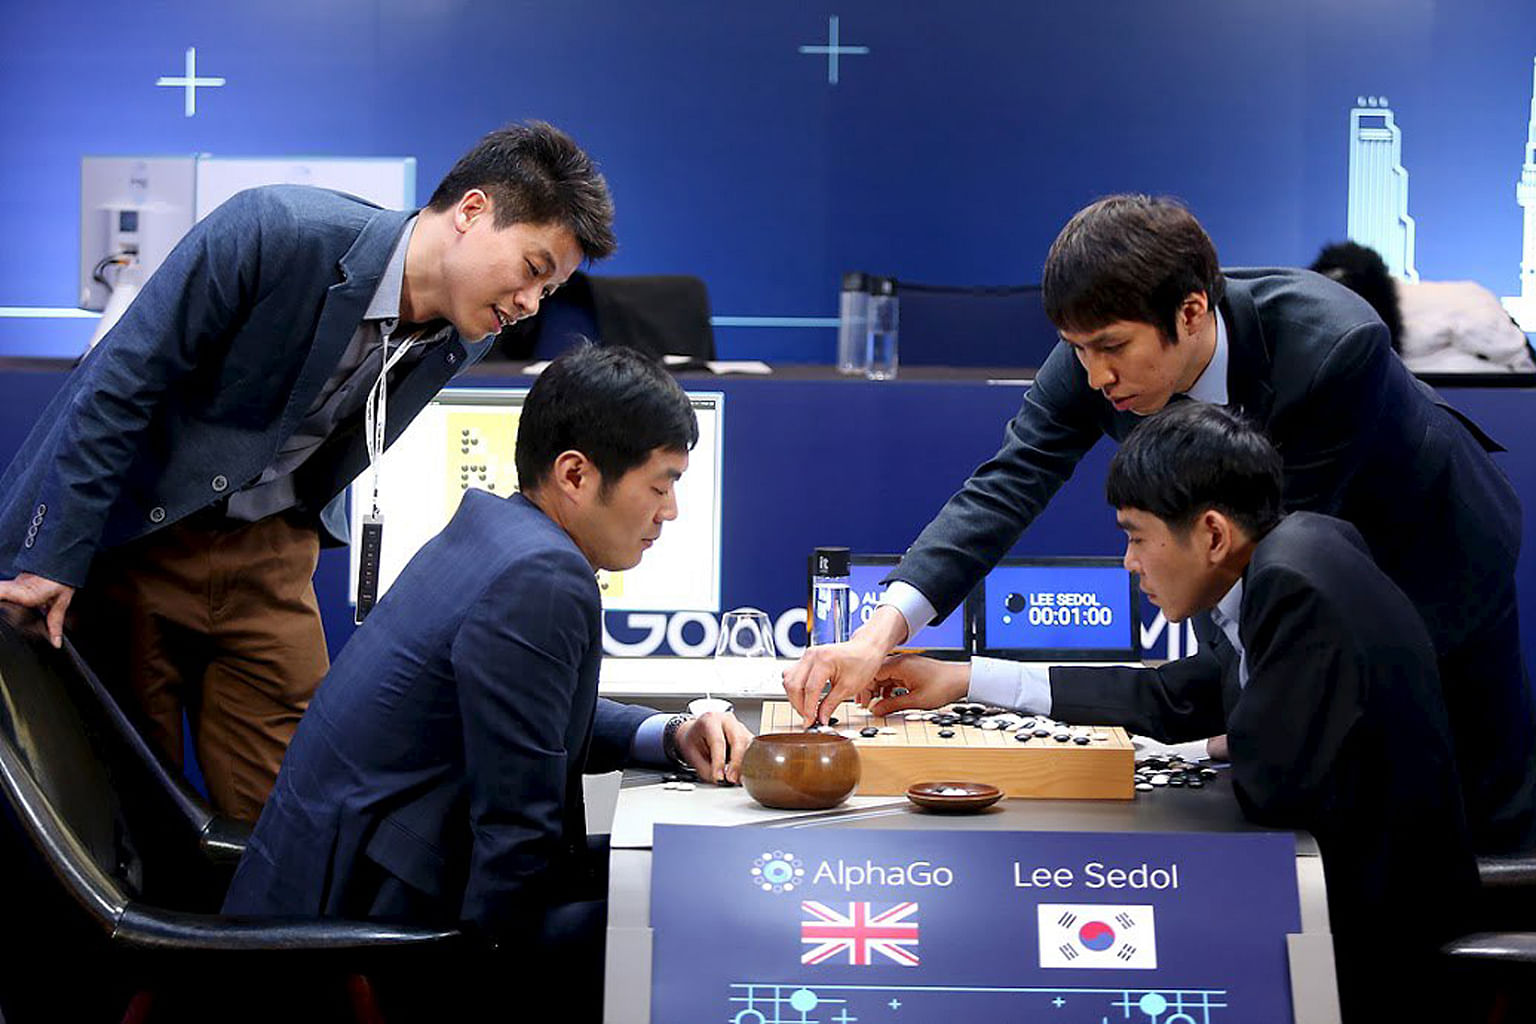 The world's top Go player, Mr Lee Sedol, reviewing his moves after the third match of the Google DeepMind Challenge Match against Google's artificial intelligence program AlphaGo in Seoul in March. The match comprised five games, of which AlphaGo won